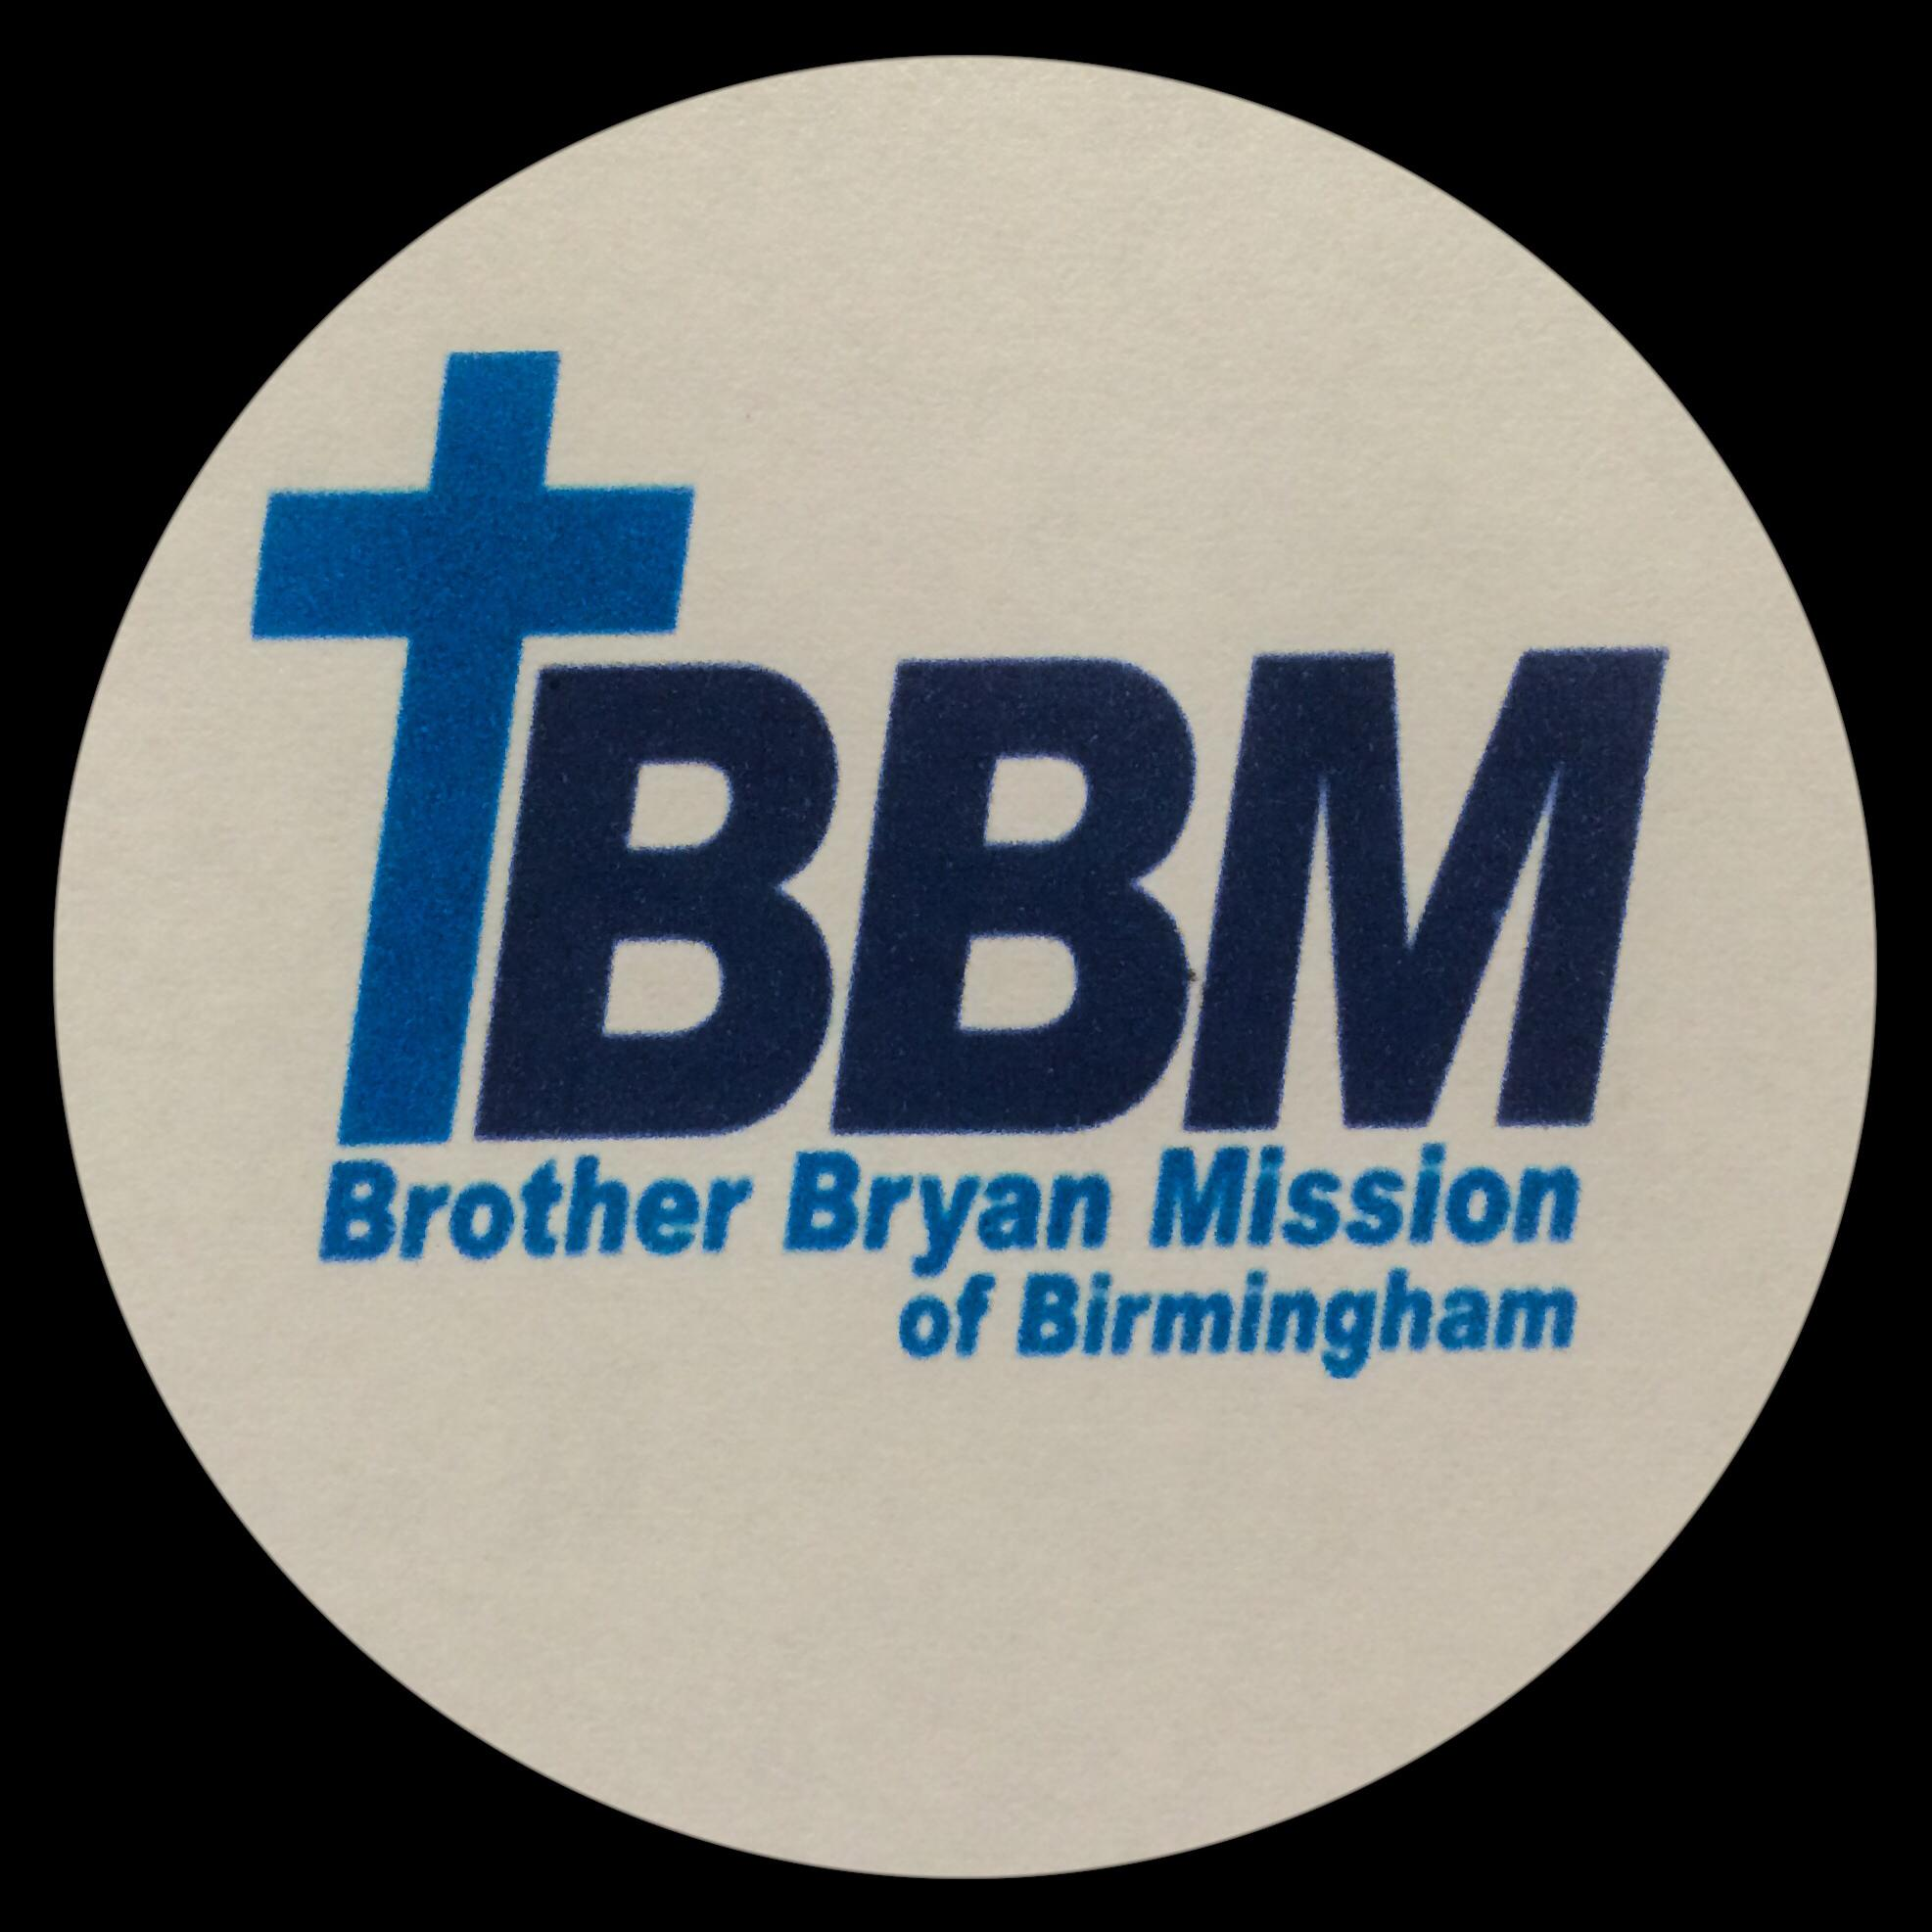 Brother Bryan Mission